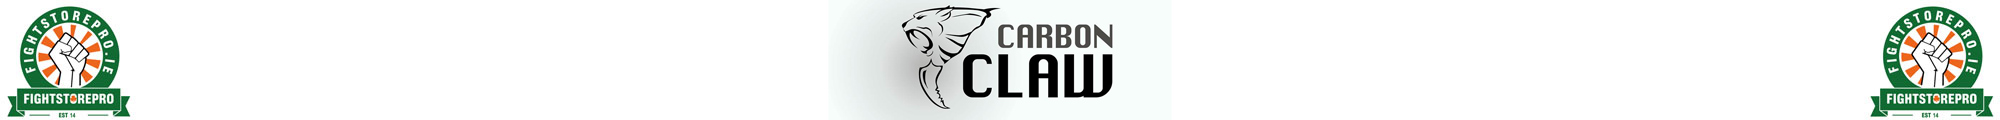 Carbon Claw - Fightstore Ireland